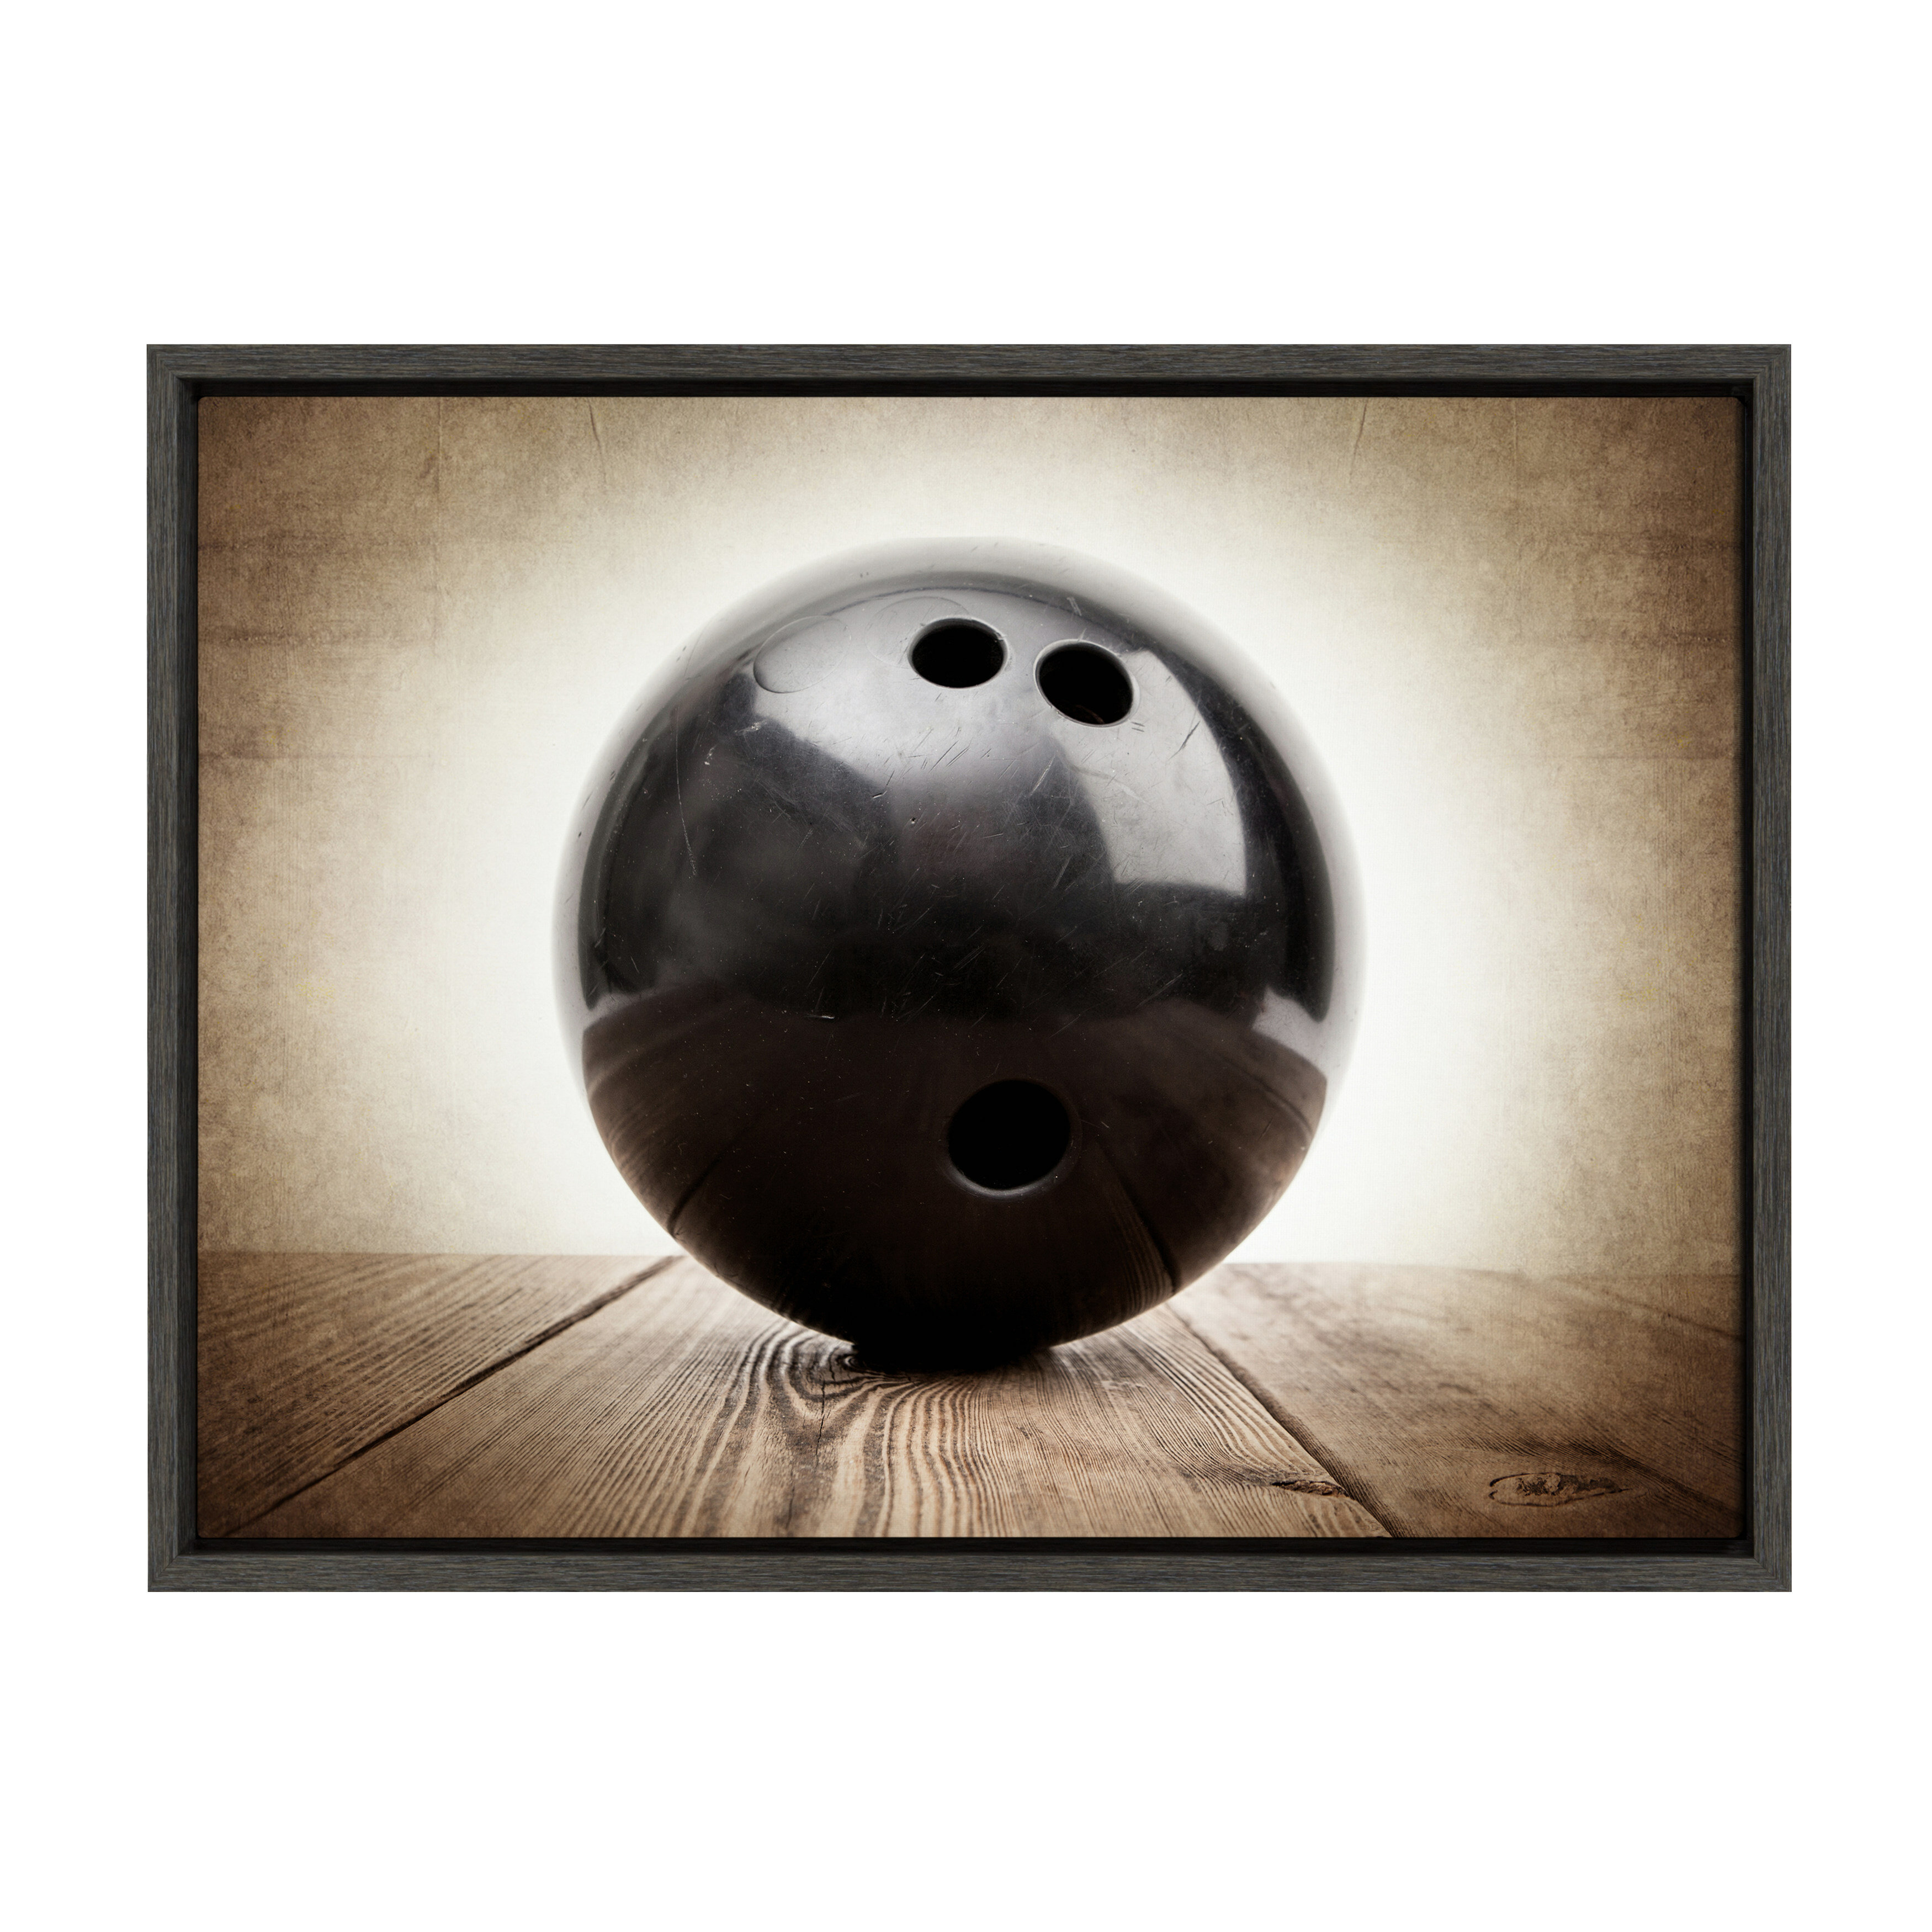 Harriet Bee Vintage Bowling Ball By Shawn St Peter Floater Frame Graphic Art Print On Canvas Wayfair